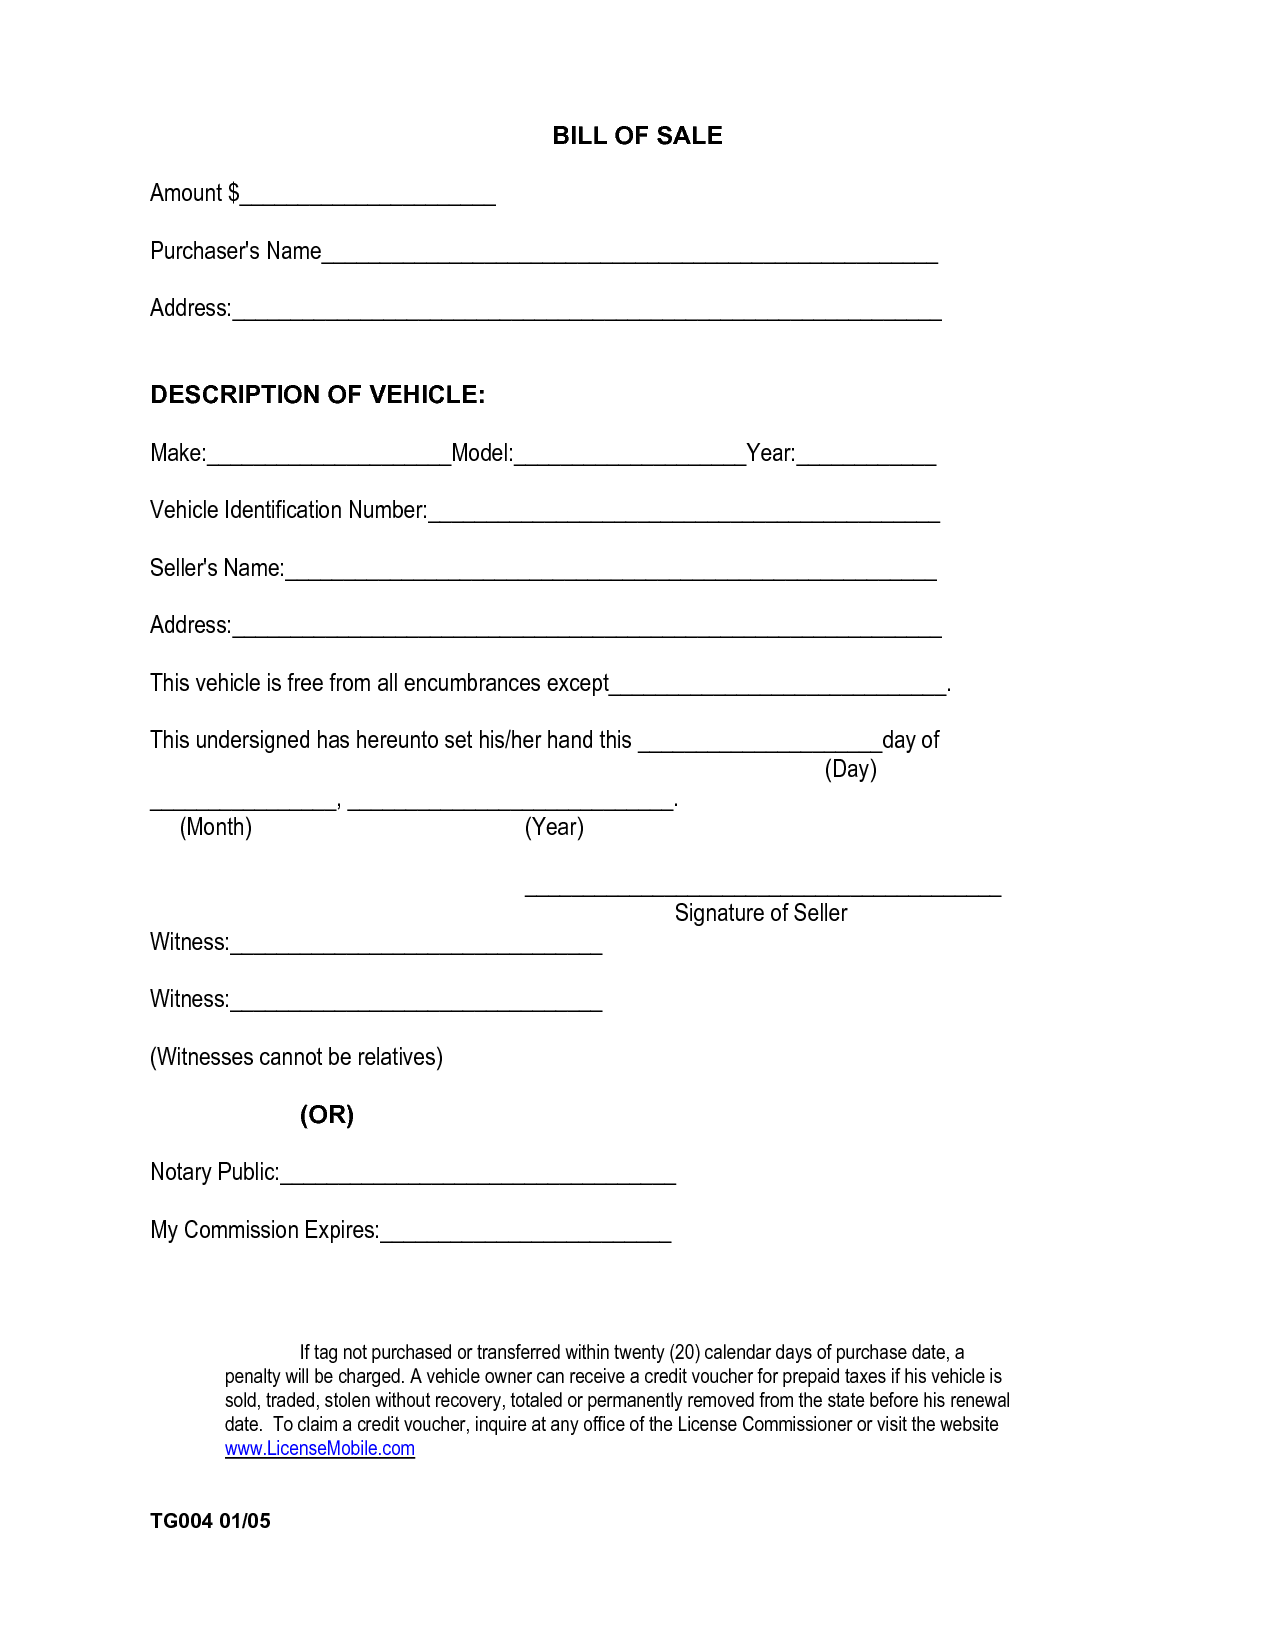 Examples Of Bill Of Sales and Printable Sample Car Bill Of Sale form Laywers Template forms